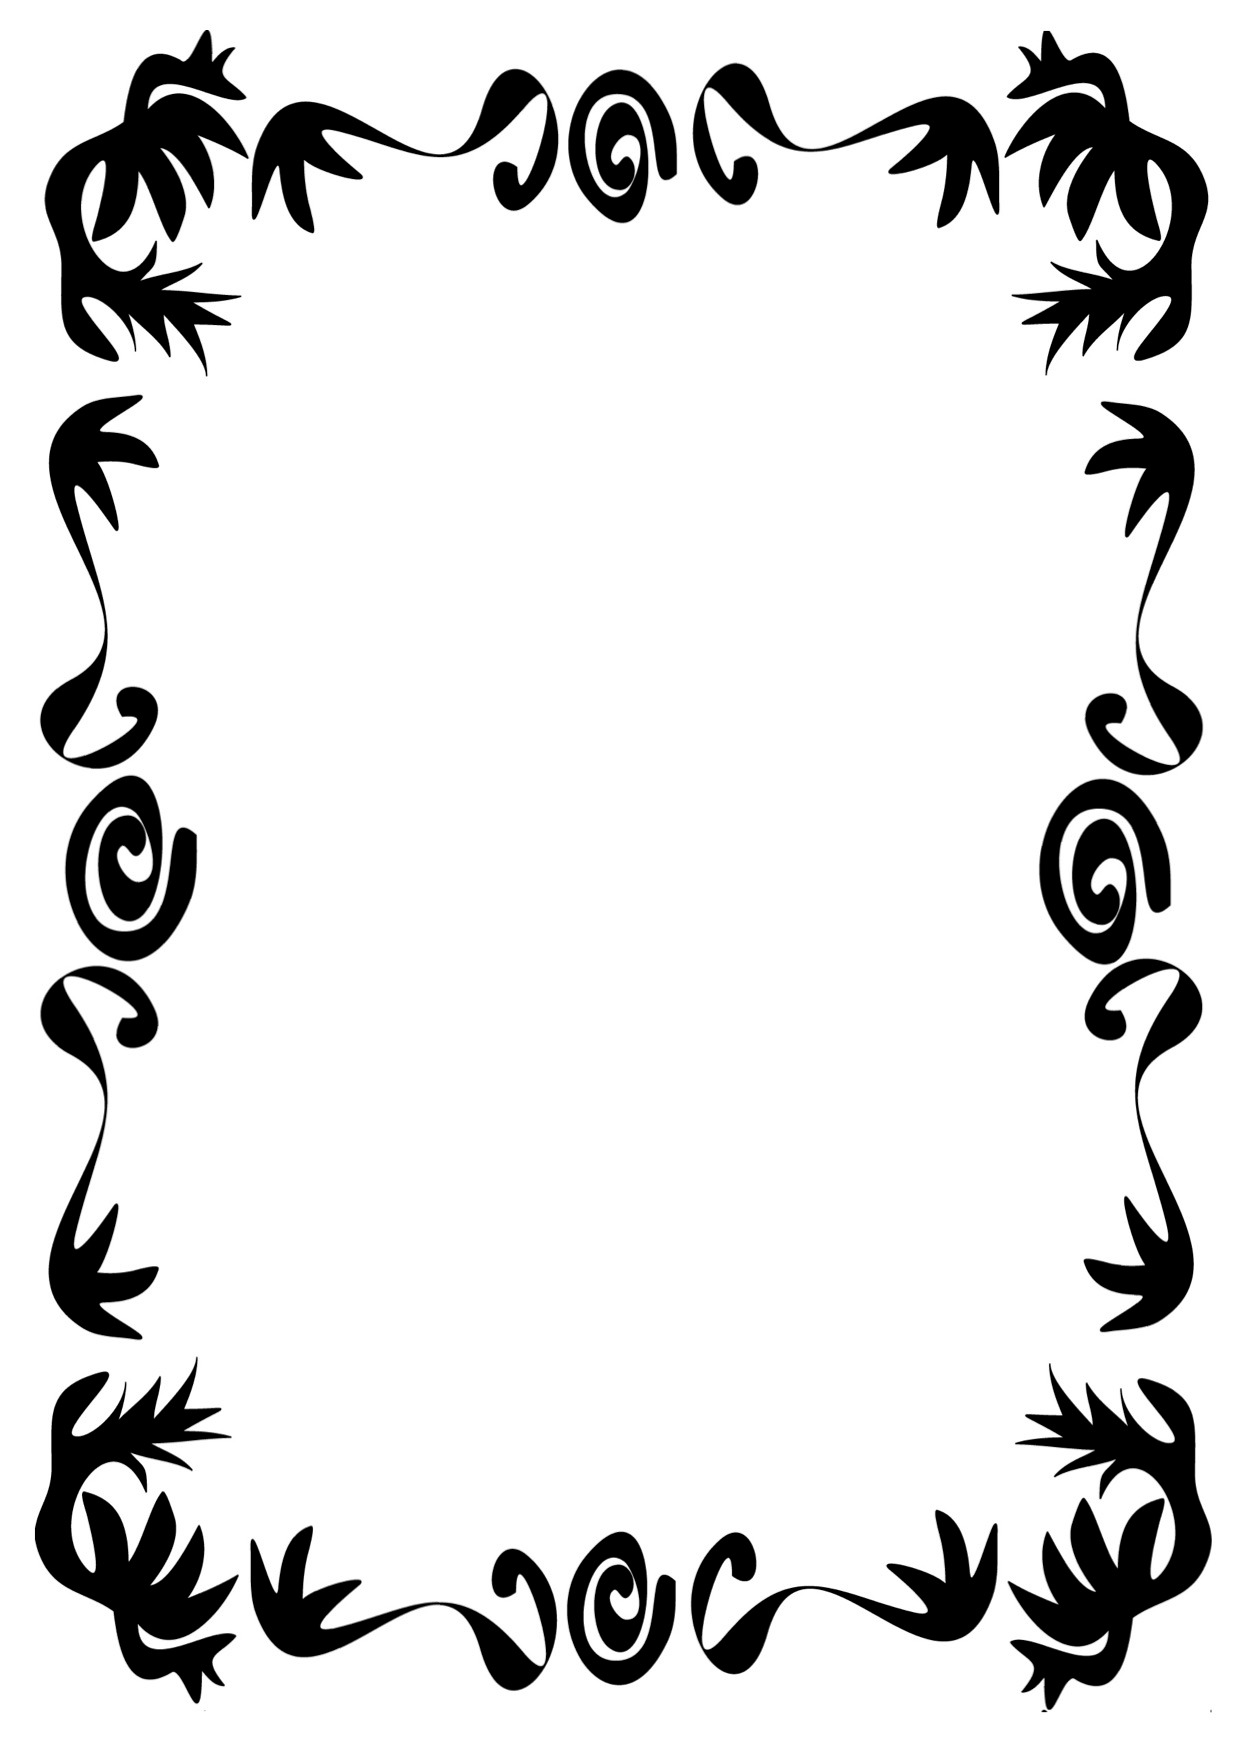 Simple Page Border Designs To Draw